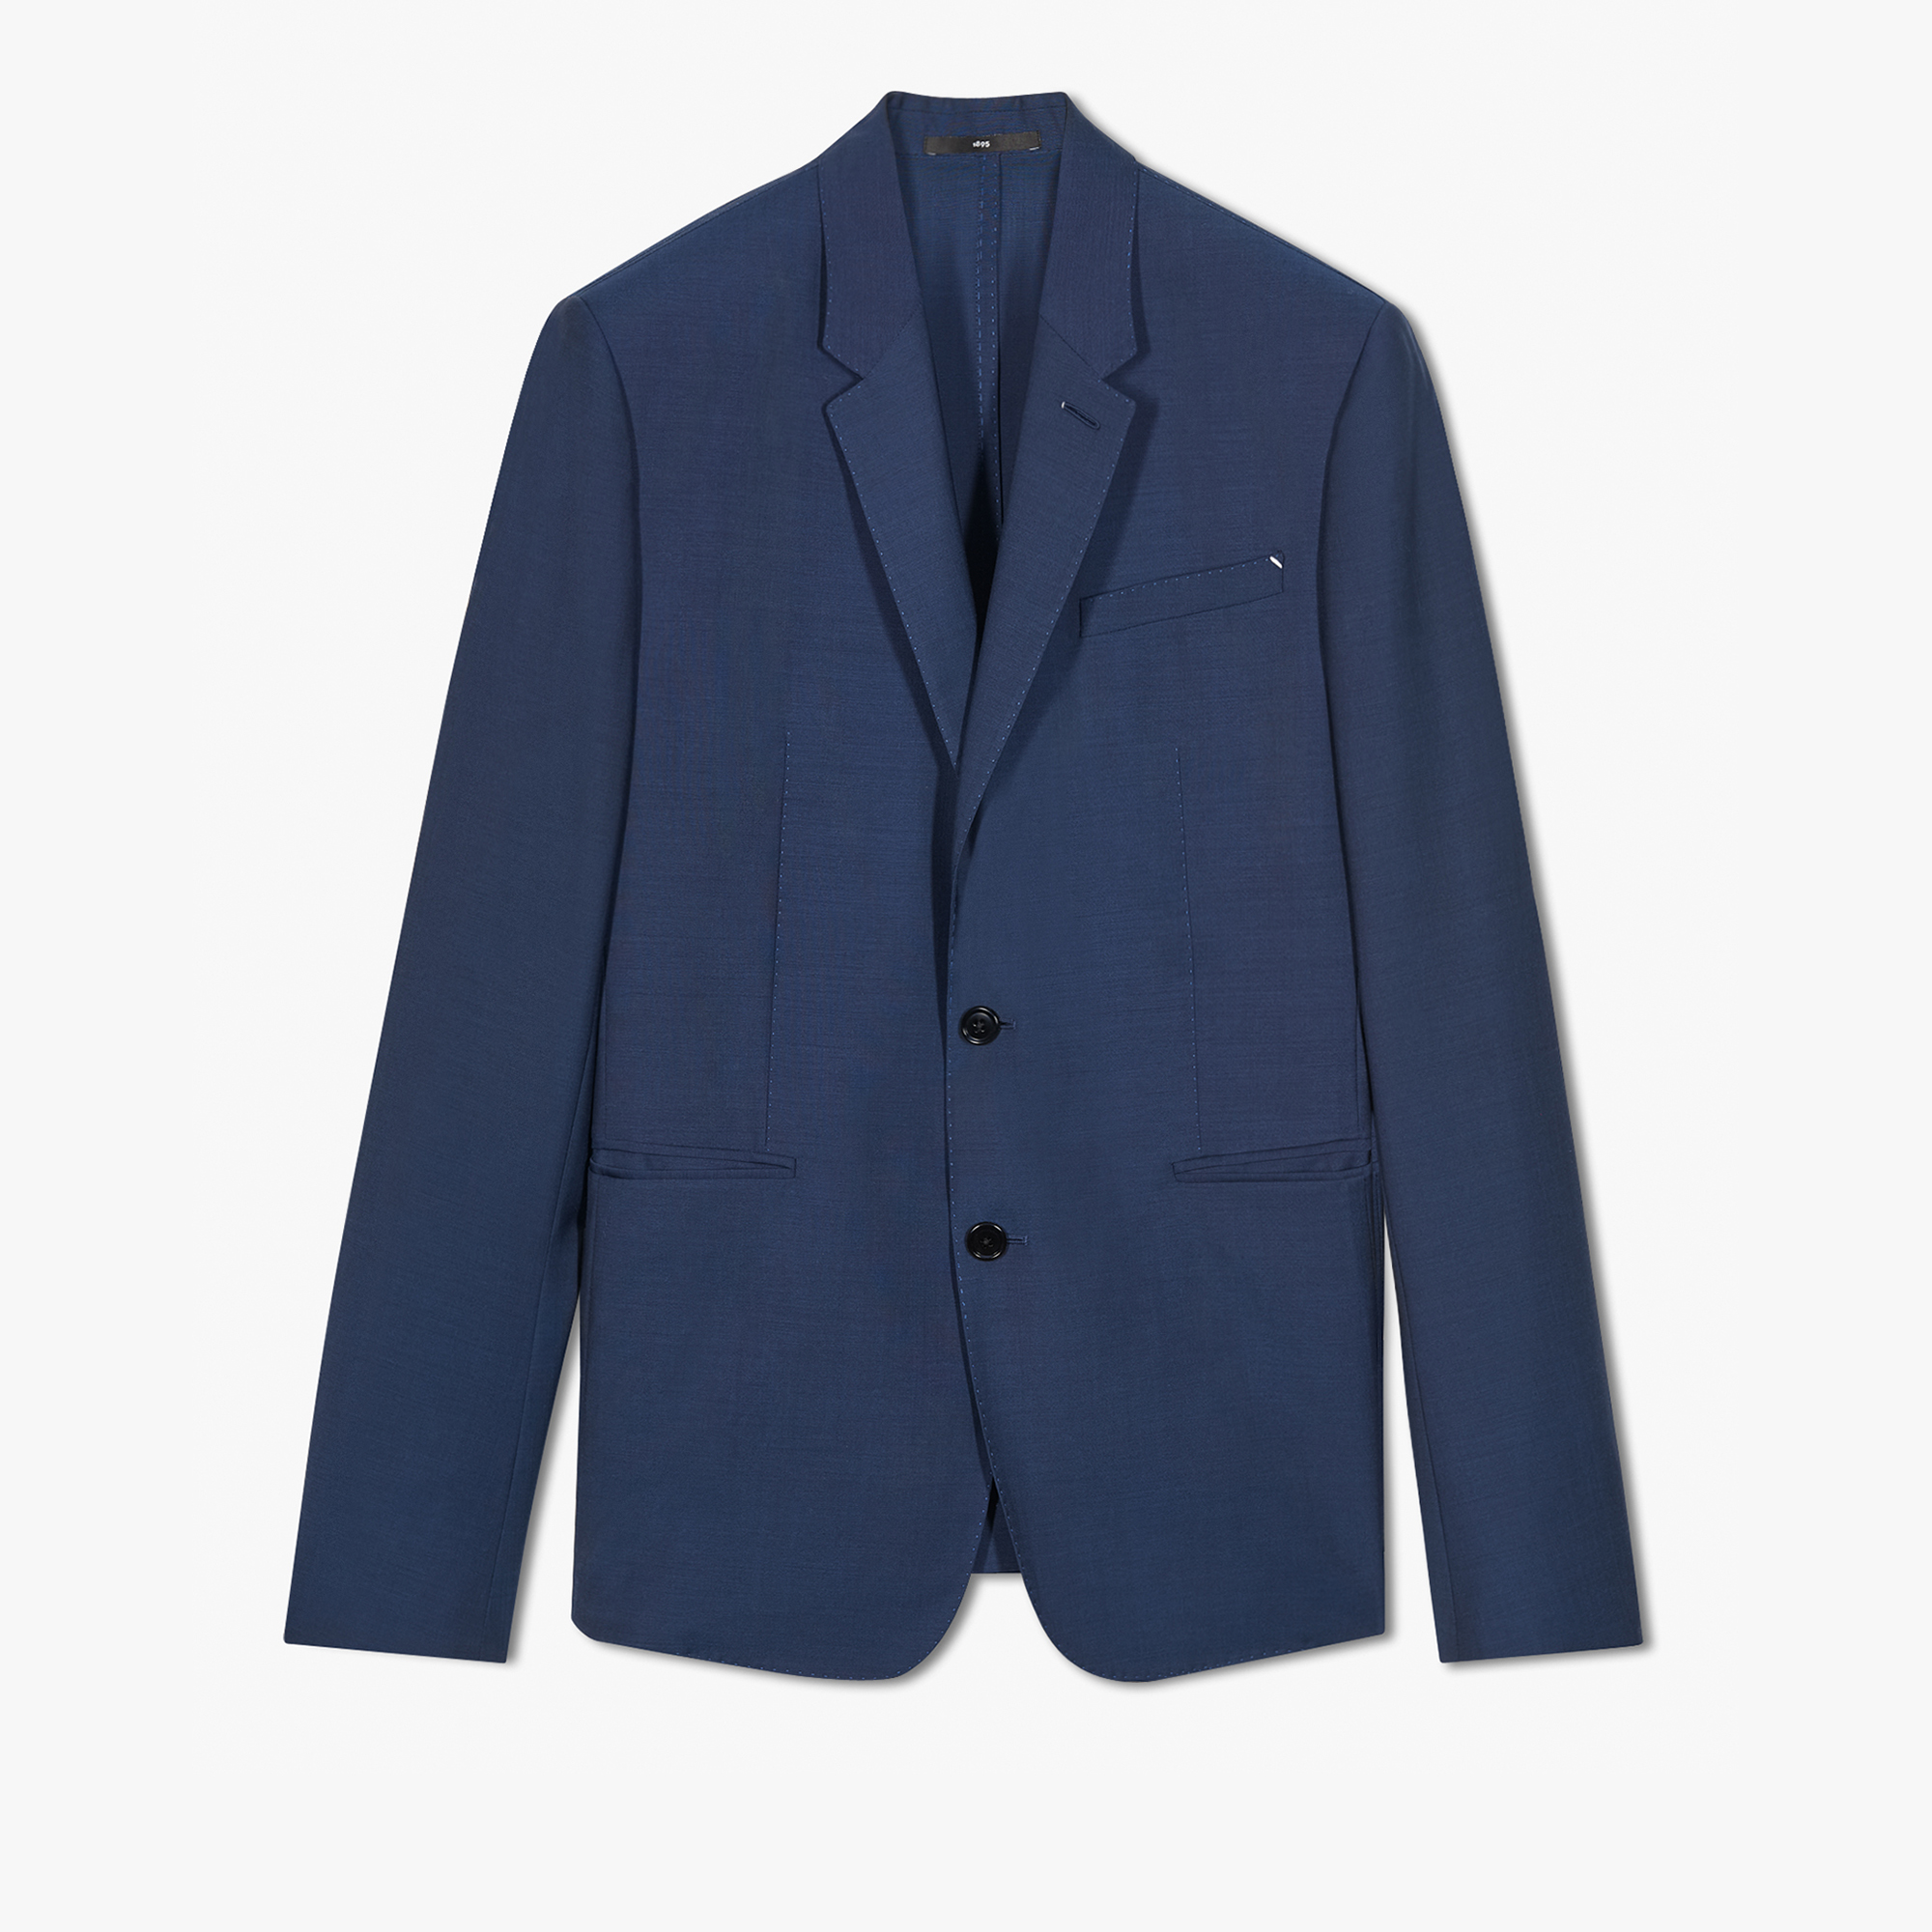 Unlined Wool Jacket, SPACE BLUE, hi-res